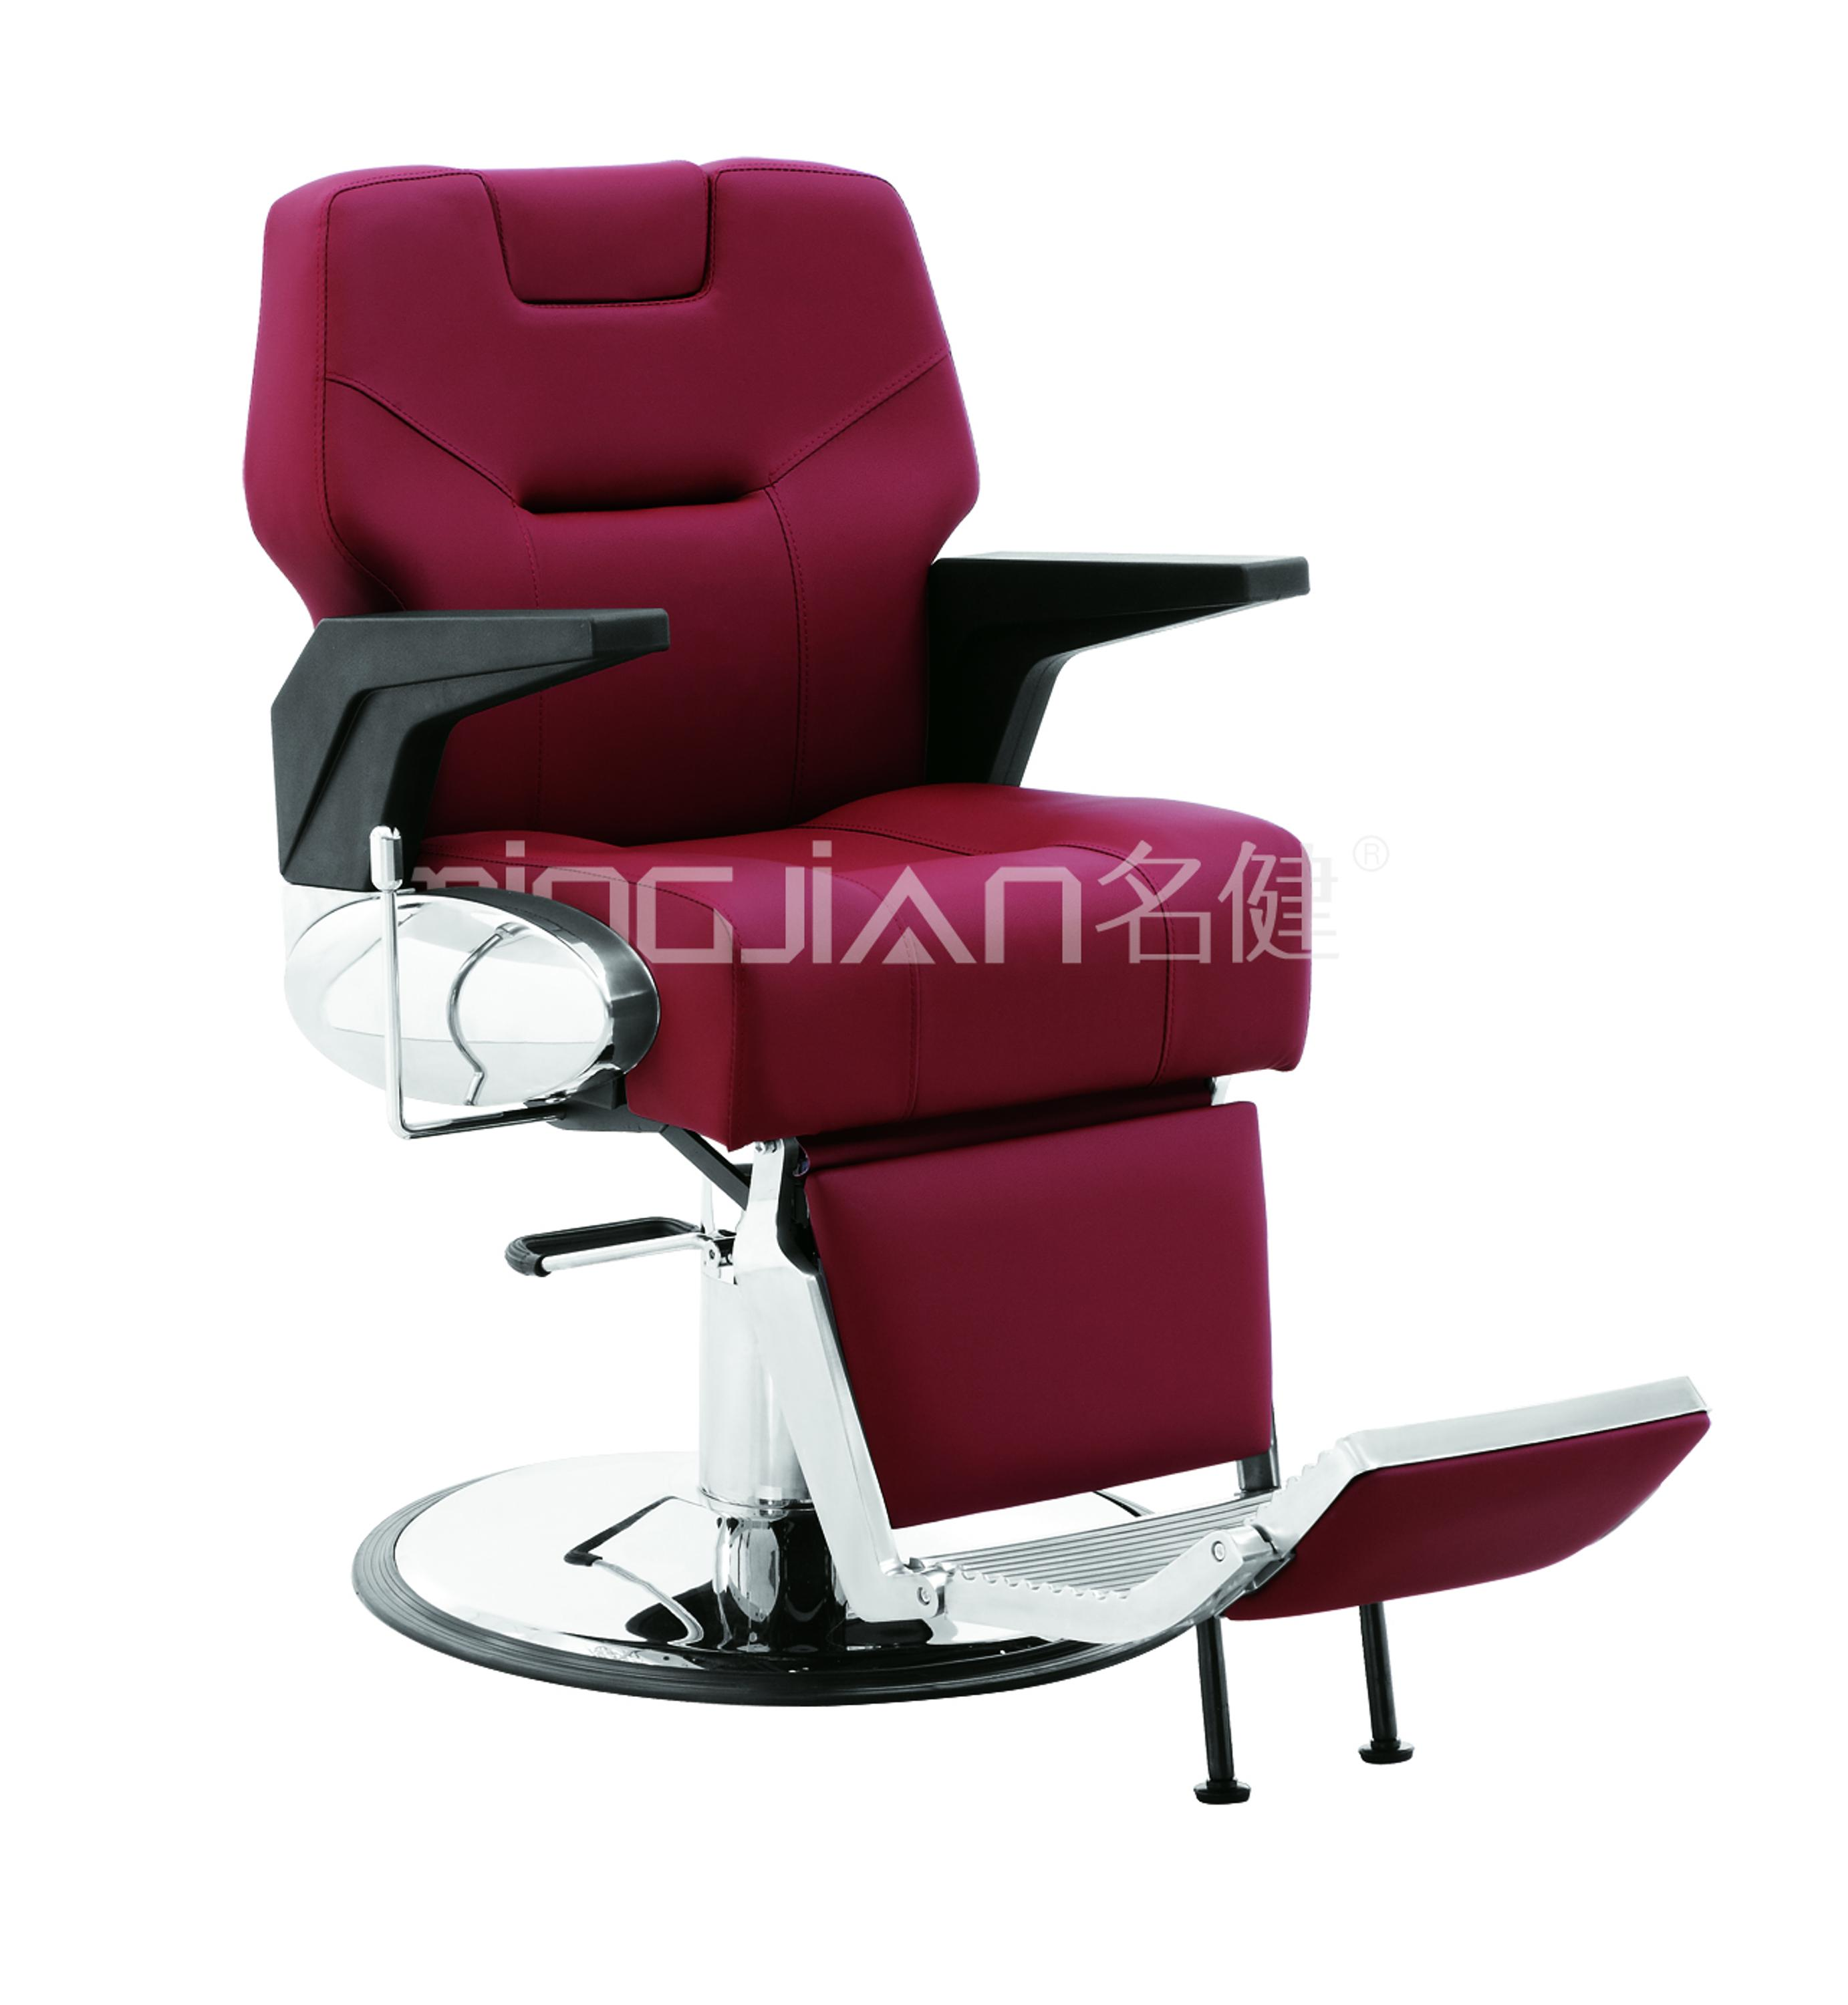 MJ Wholesale Red Barber Chair Beauty Reclining Salon Chair